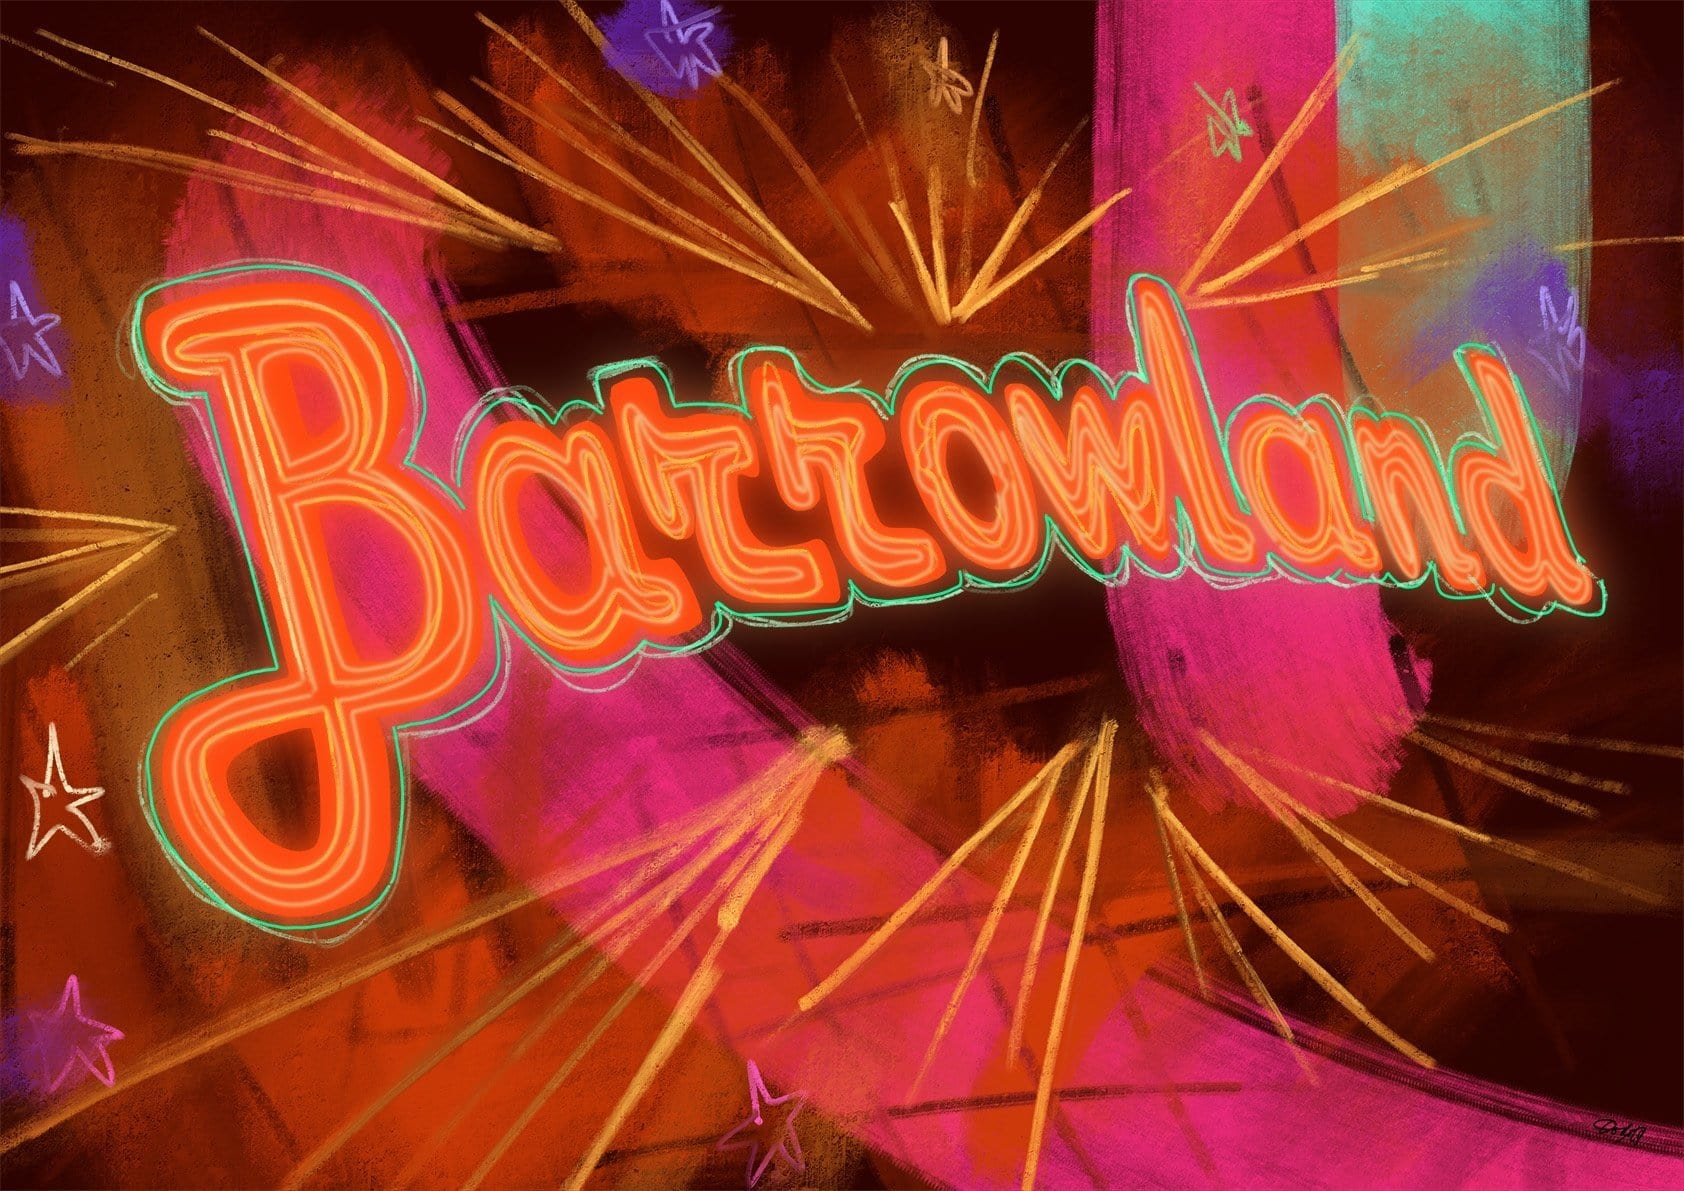 Barrowland Matte Art Print